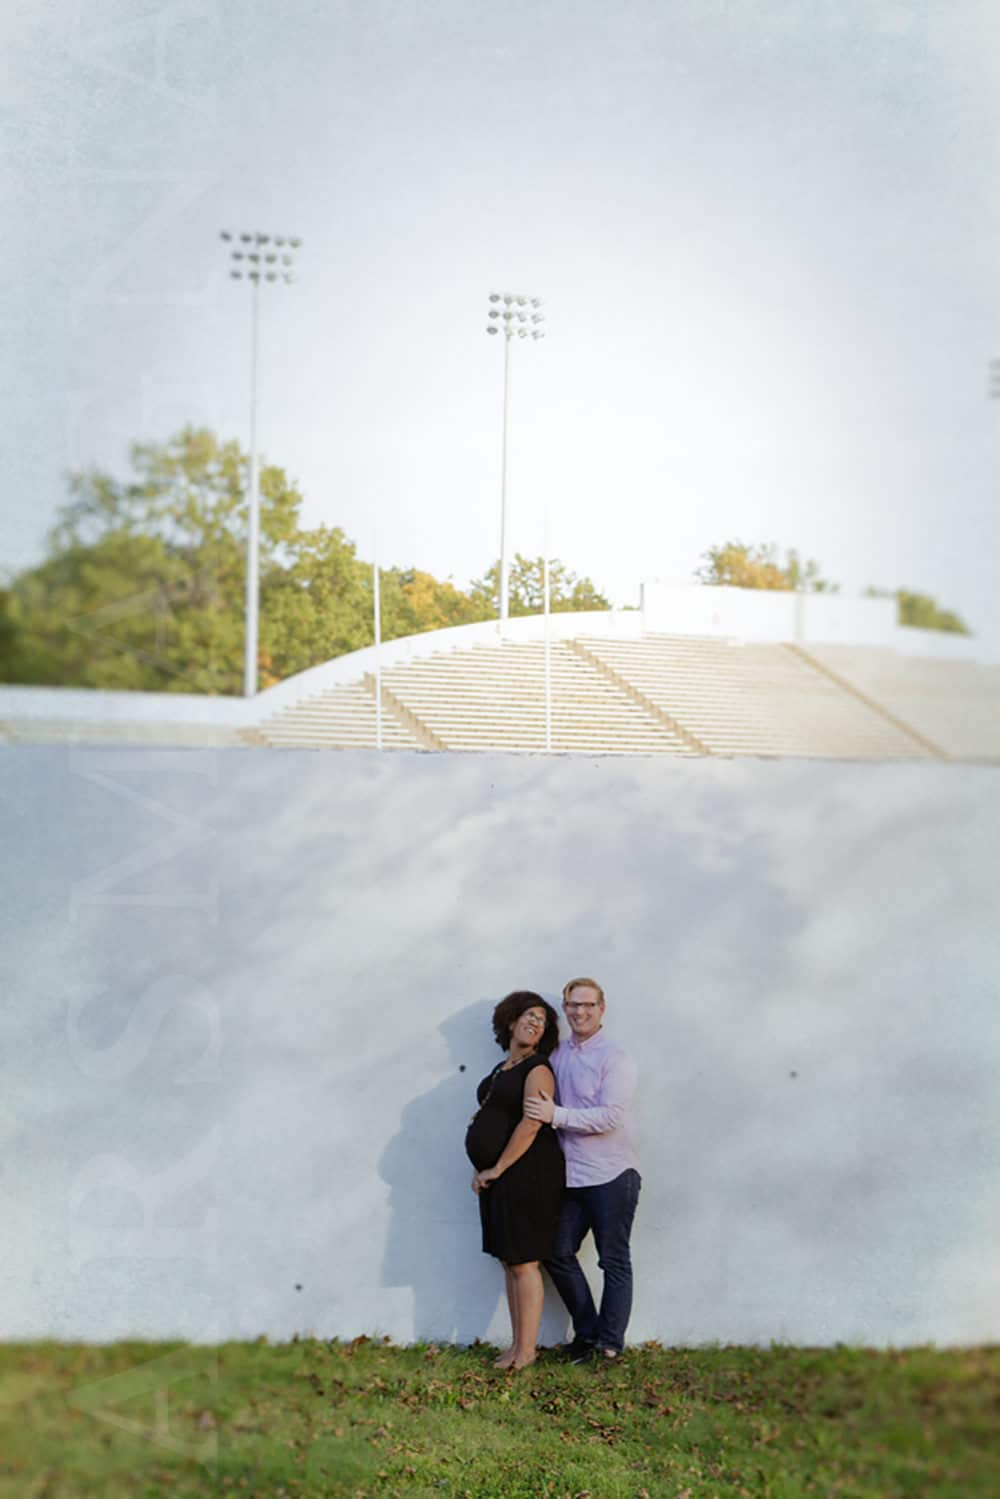 pregnancy photography boston jamaica plain white stadium